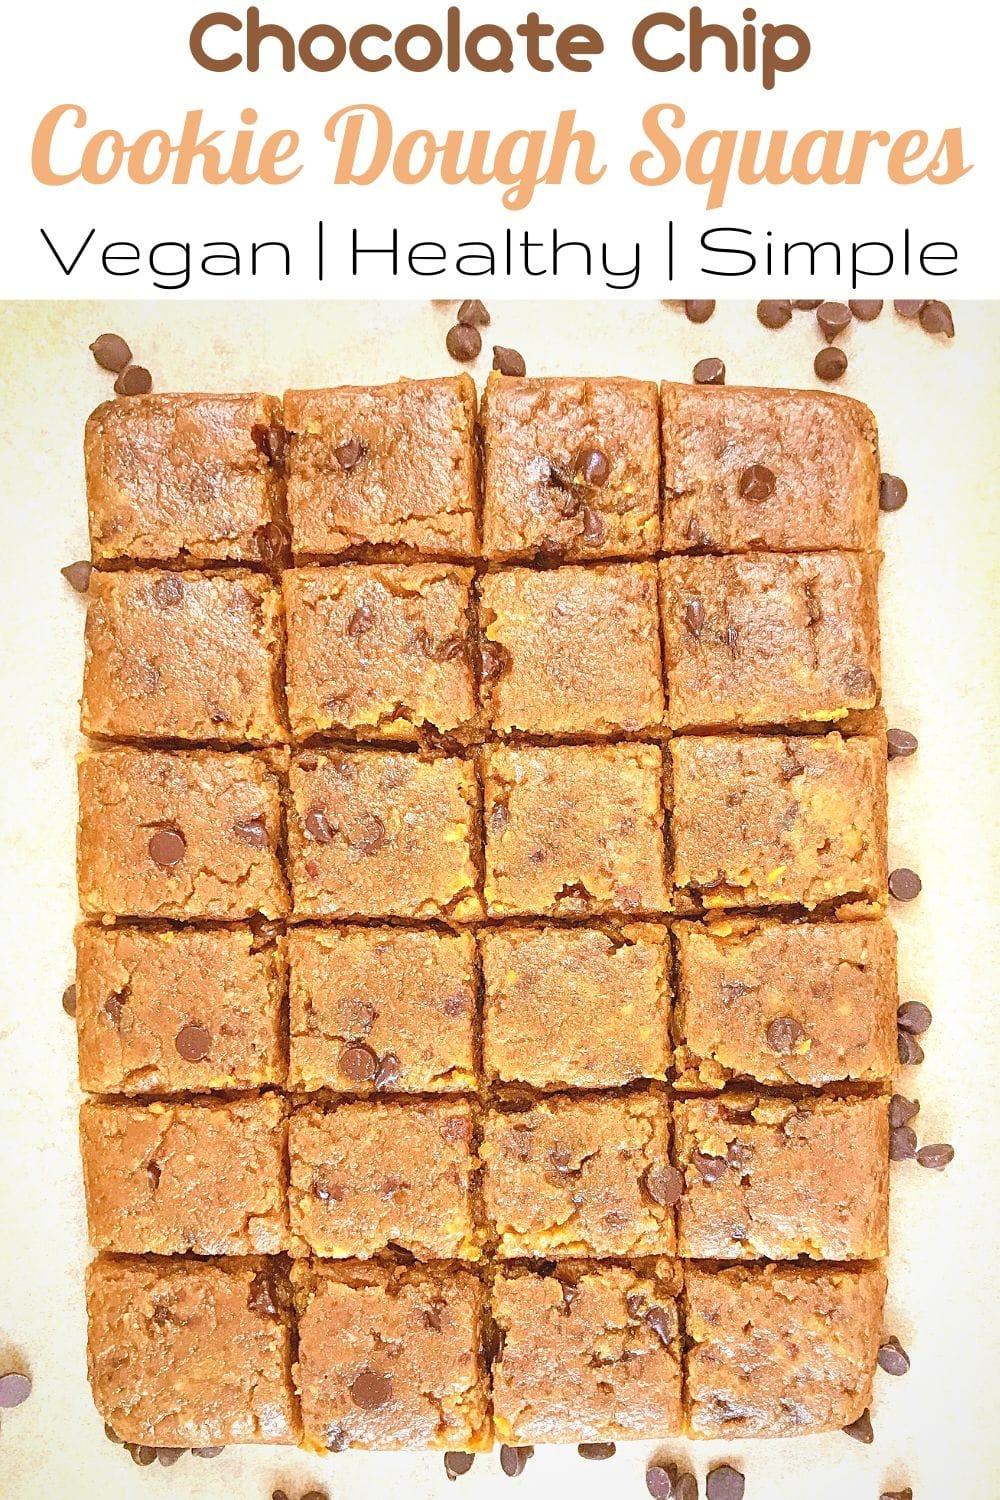 Chocolate Chip Vegan Healthy Cookie Dough Squares for Pinterest